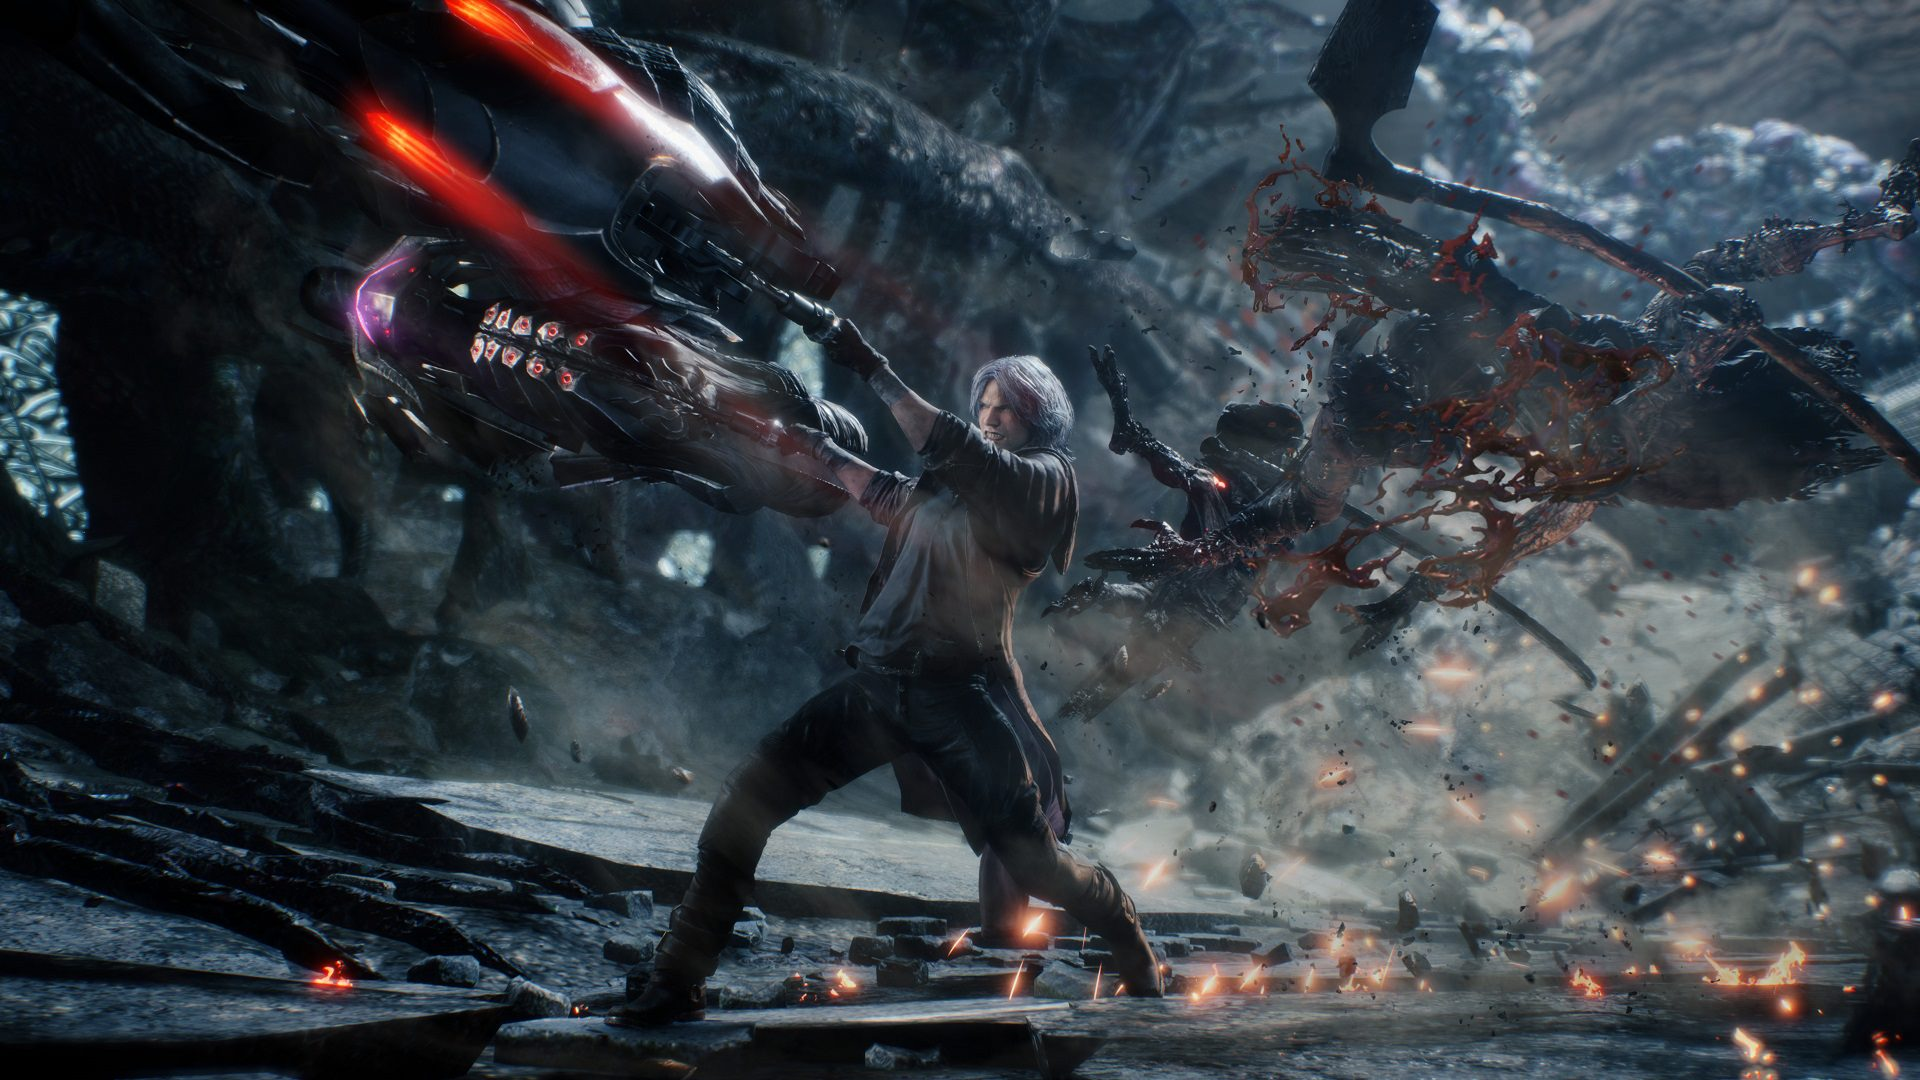 Dante entre en action dans Devil May Cry 5